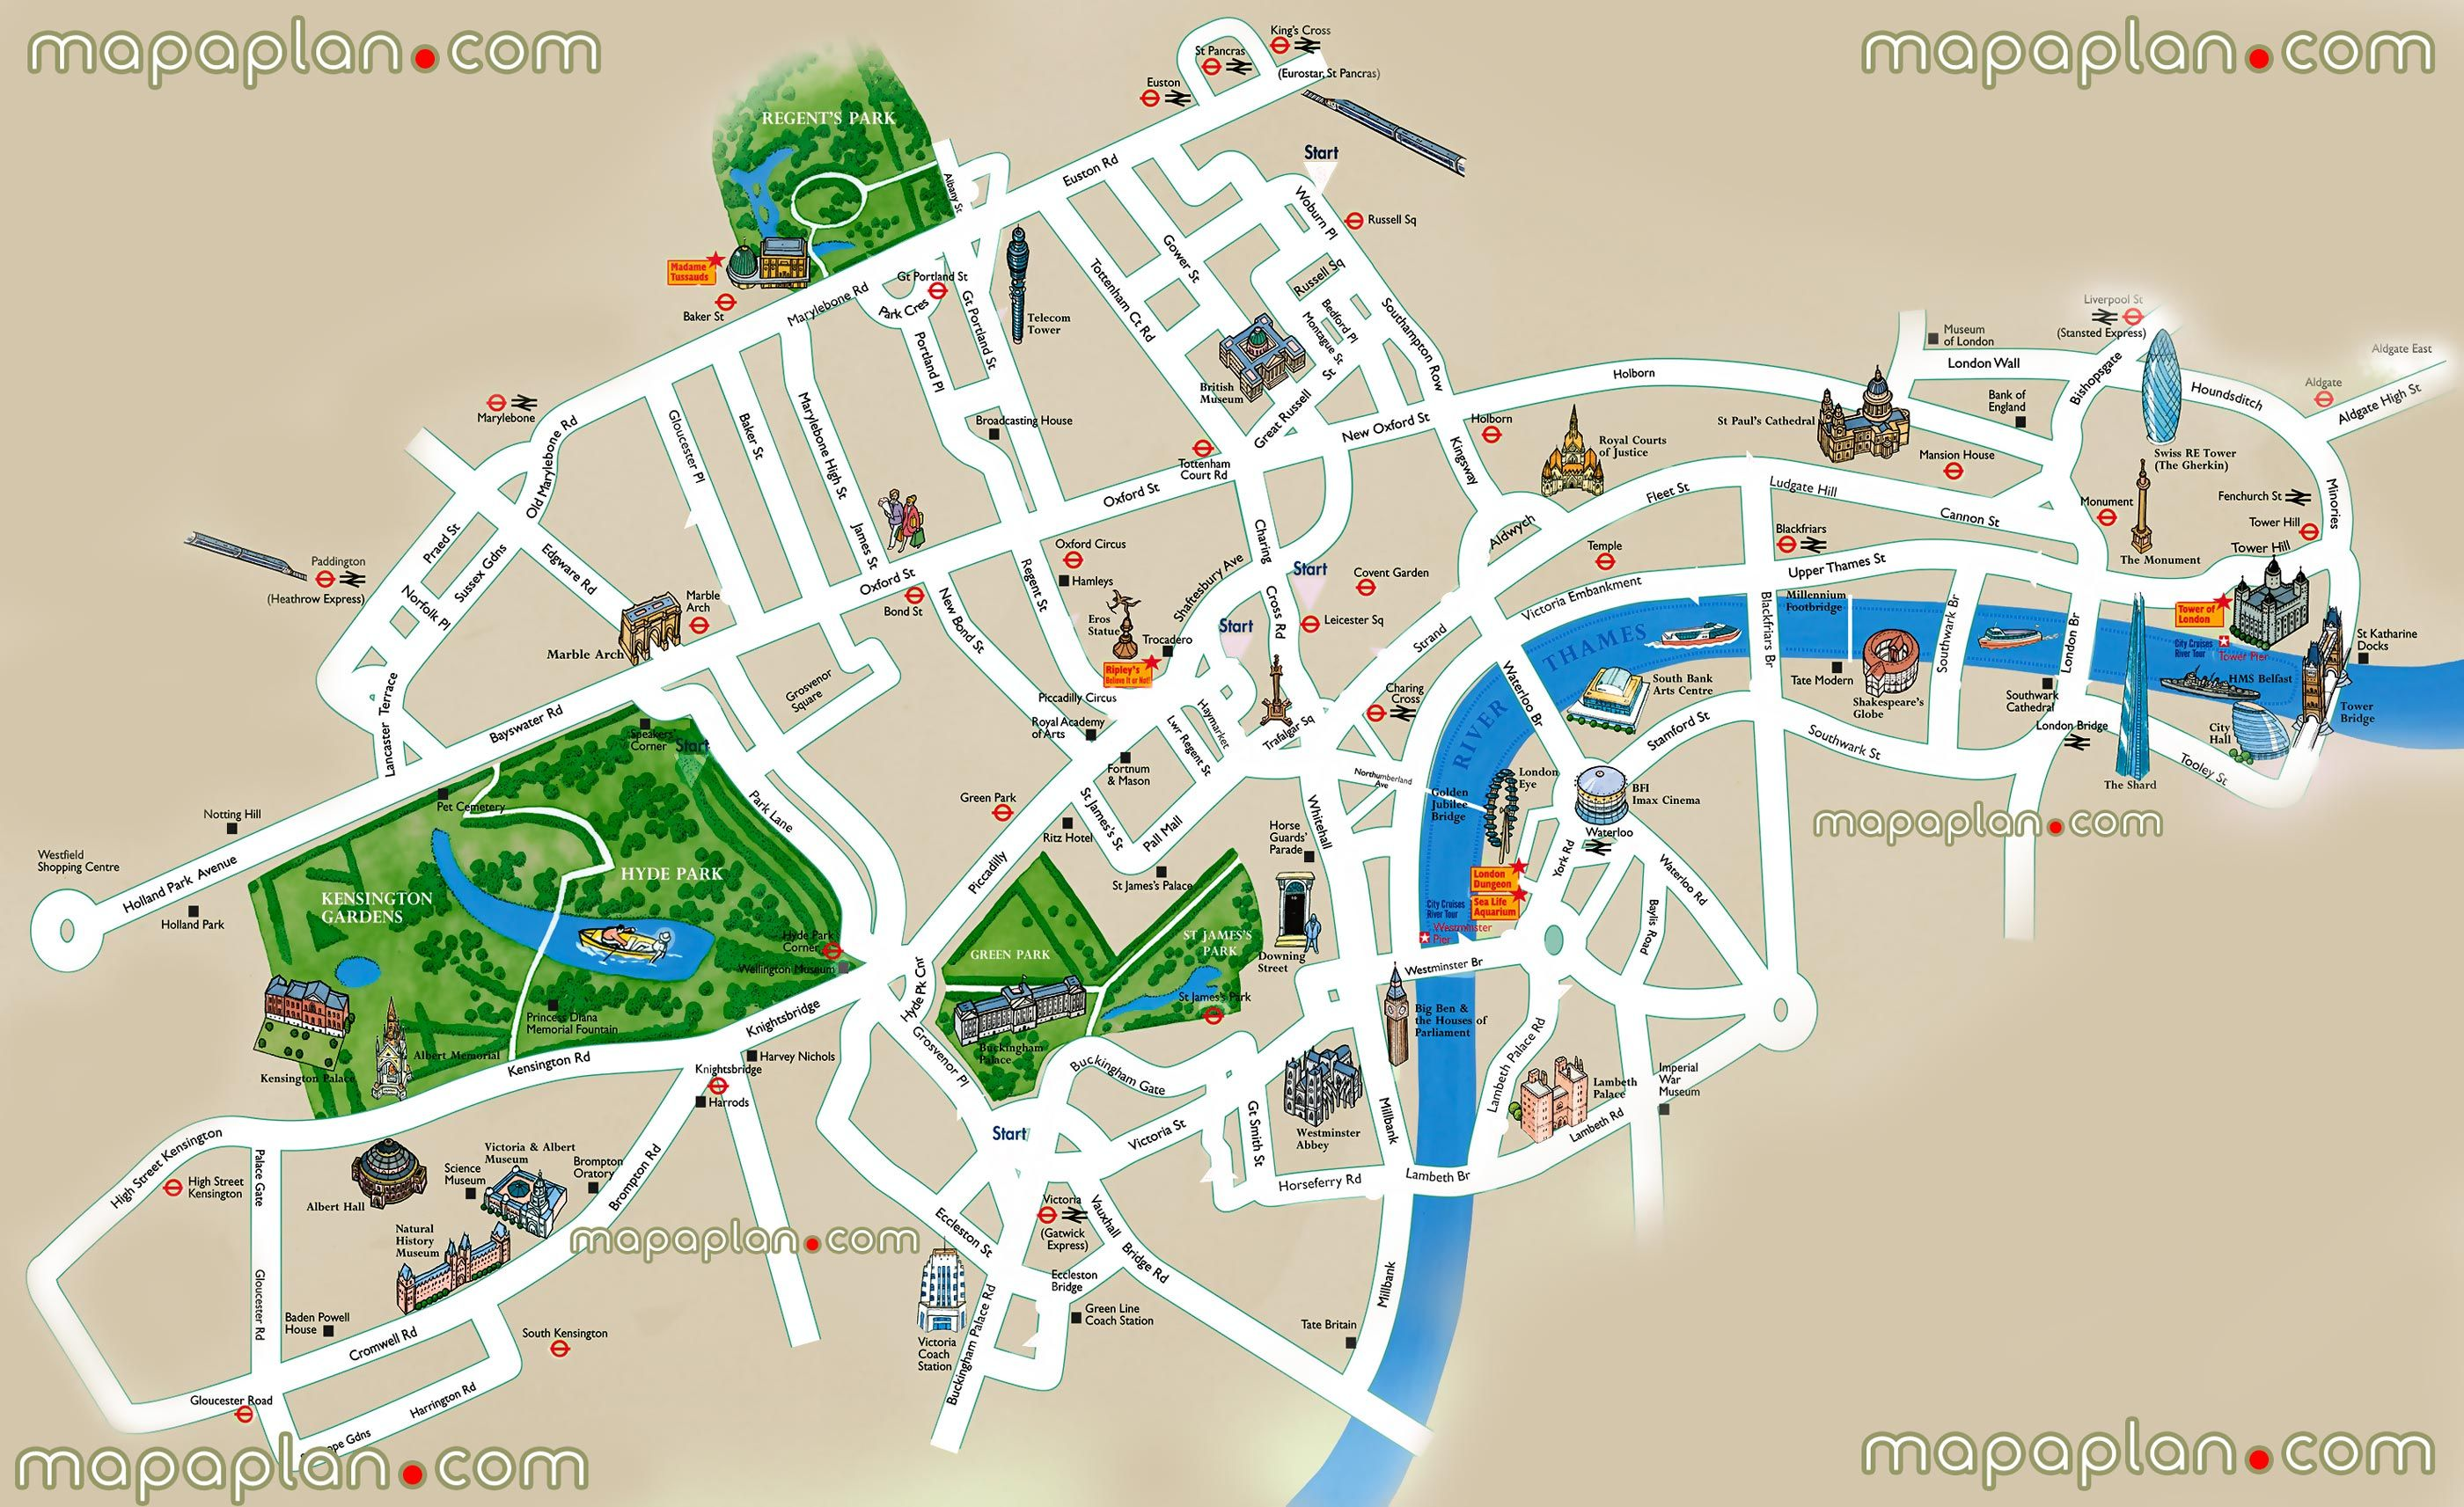 Easy London Map.Simple Easy Navigate London Top 10 Points Interest Sites Millennium